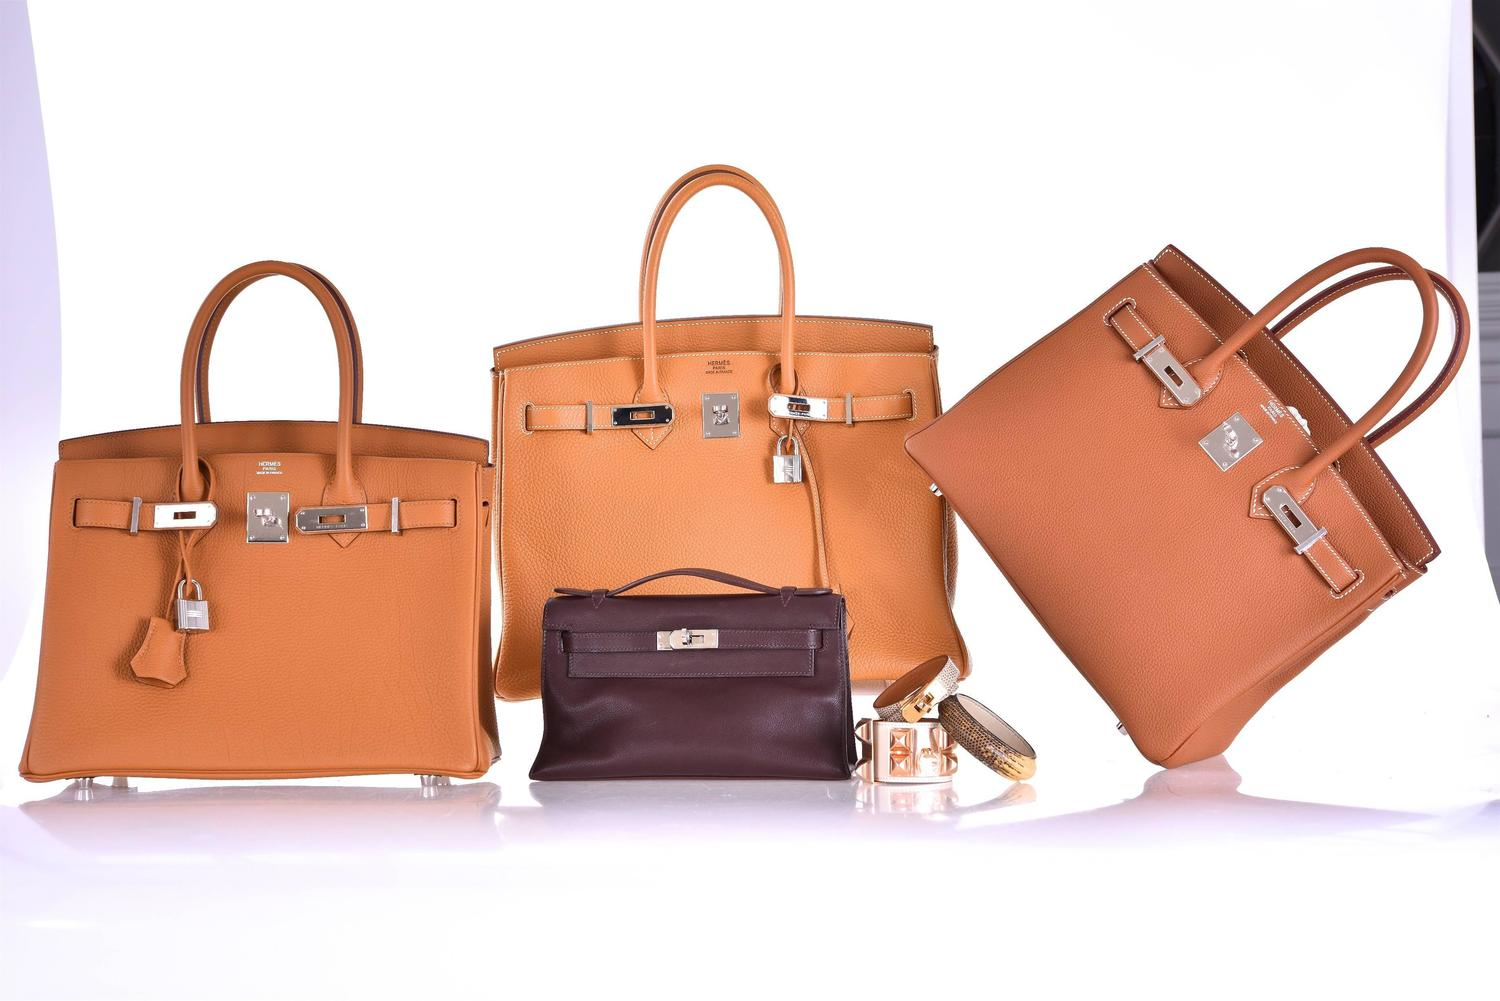 hermes bags cost - Hermes Birkin 30cm Caramel Epsom with Silver Hardware